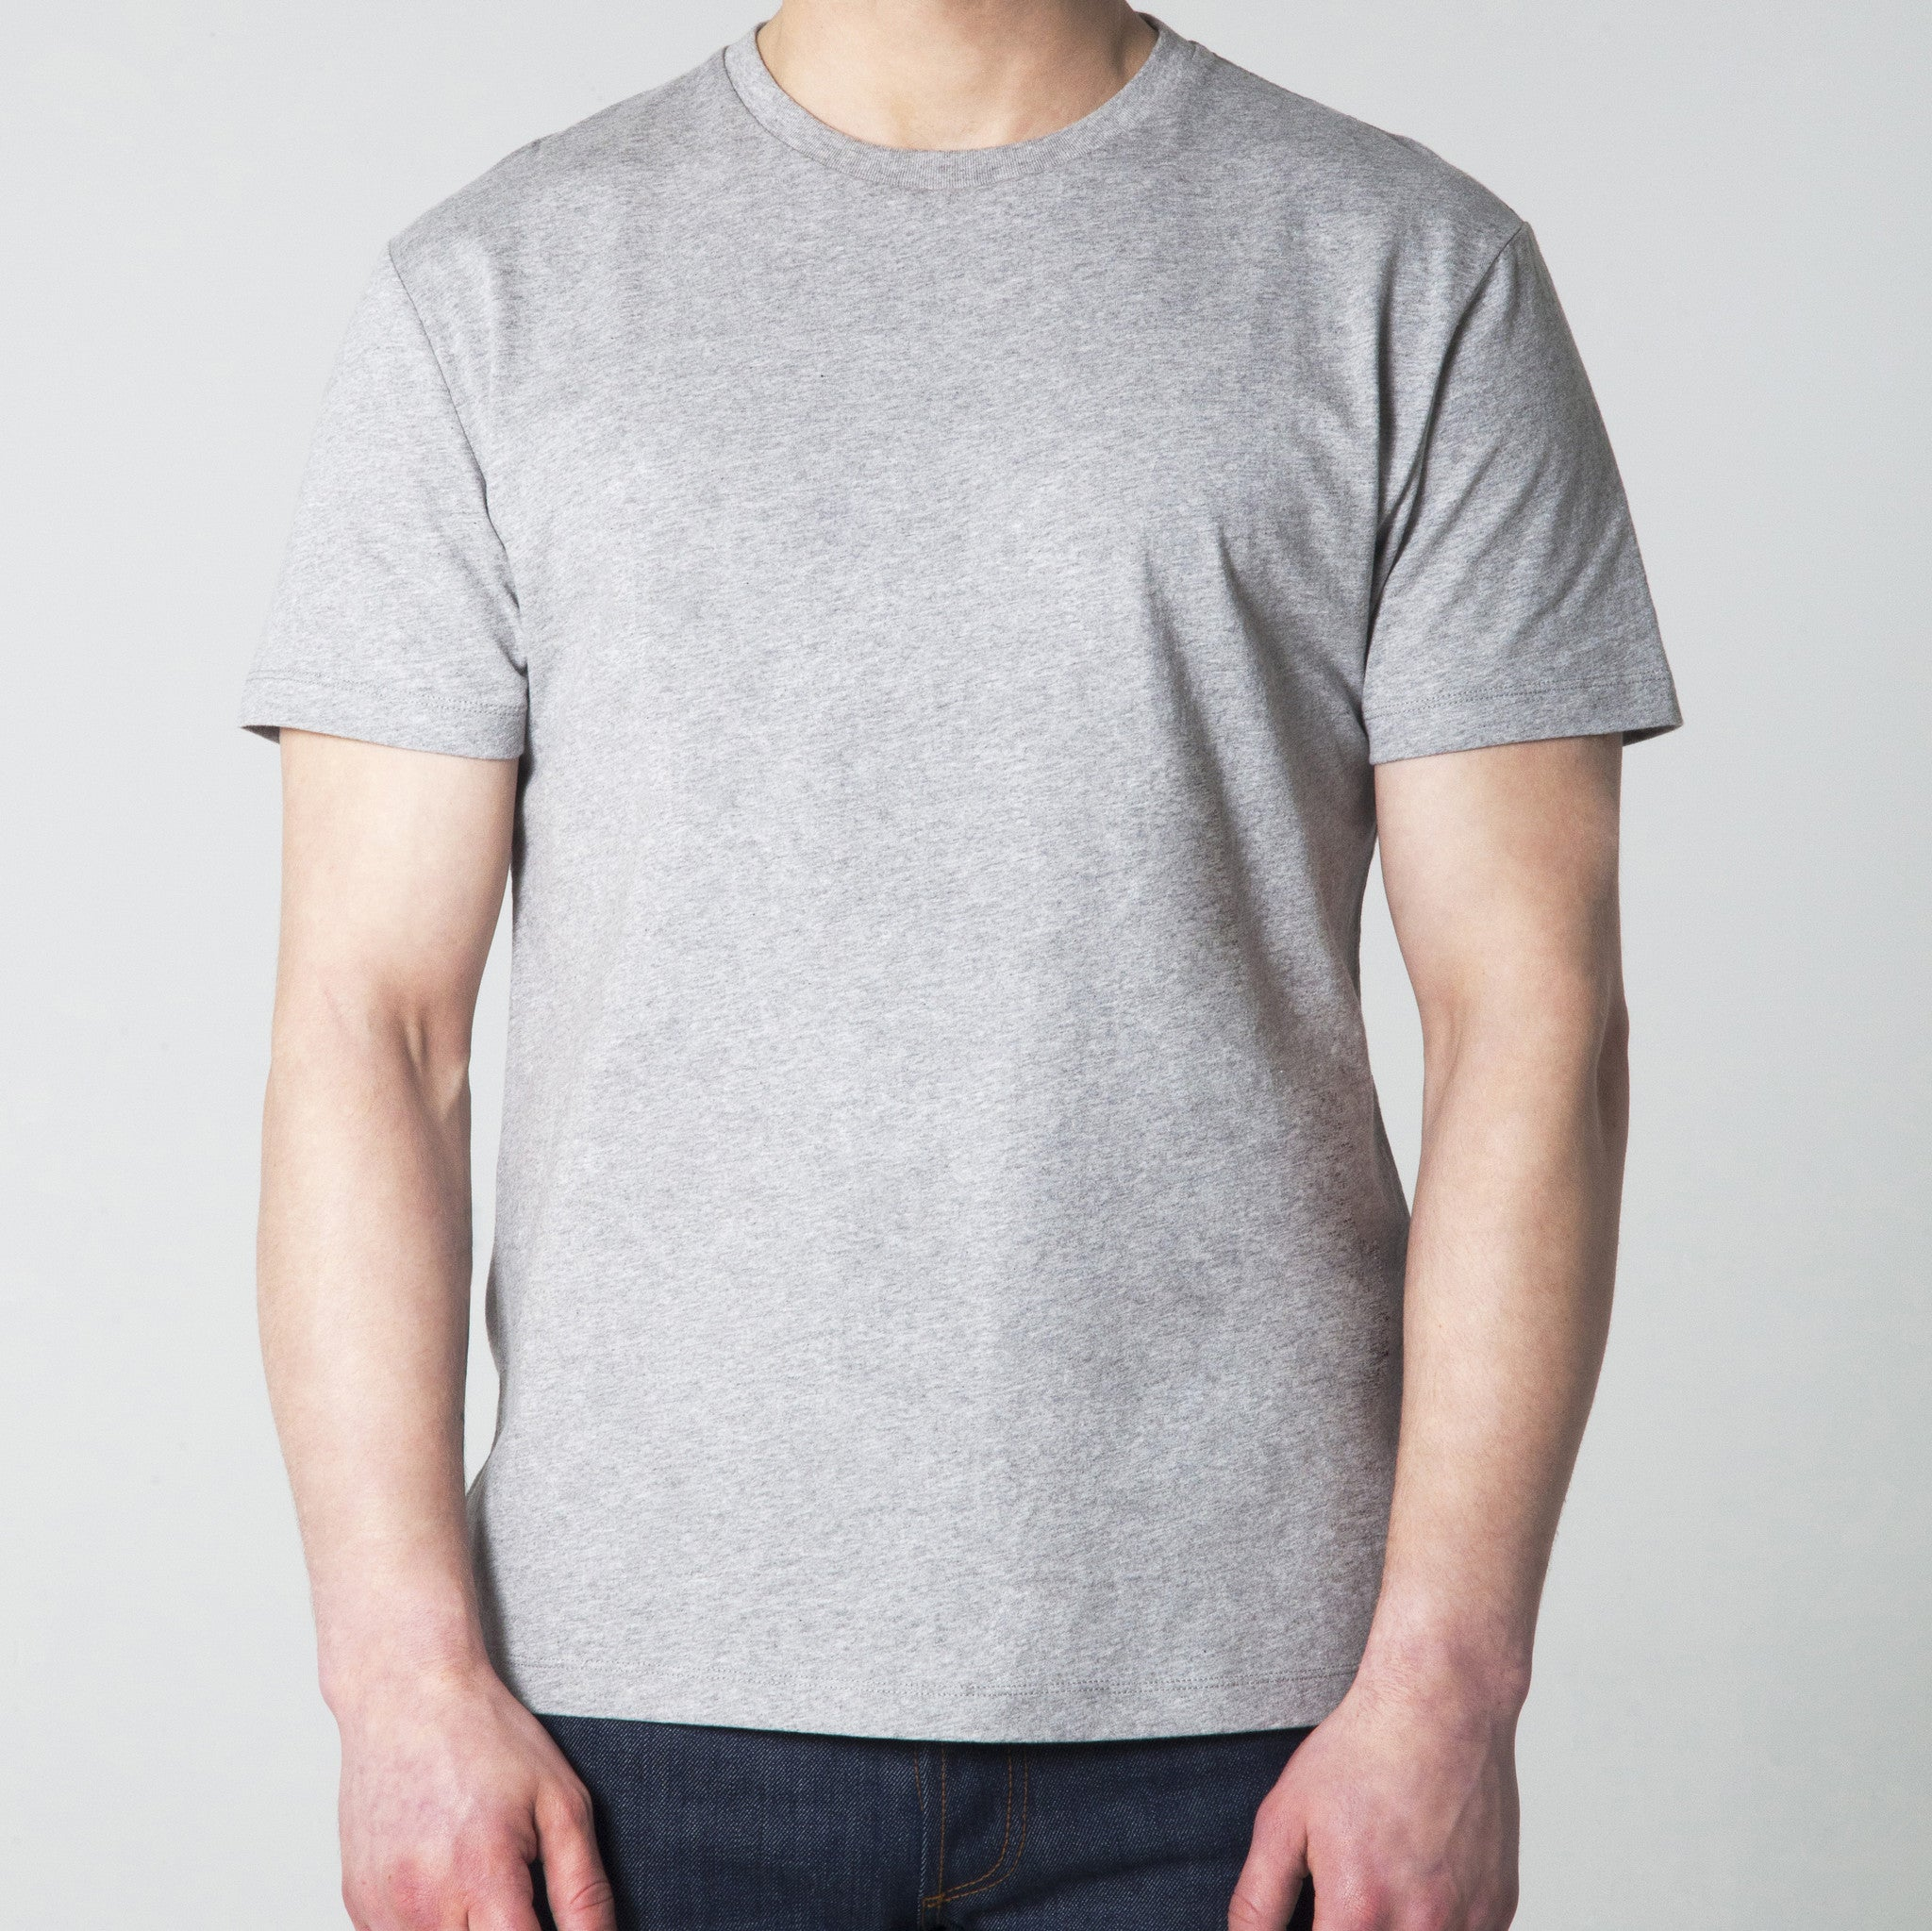 Essential Tops - Essential Clothing & T Shirts, Premium Cotton Shirts